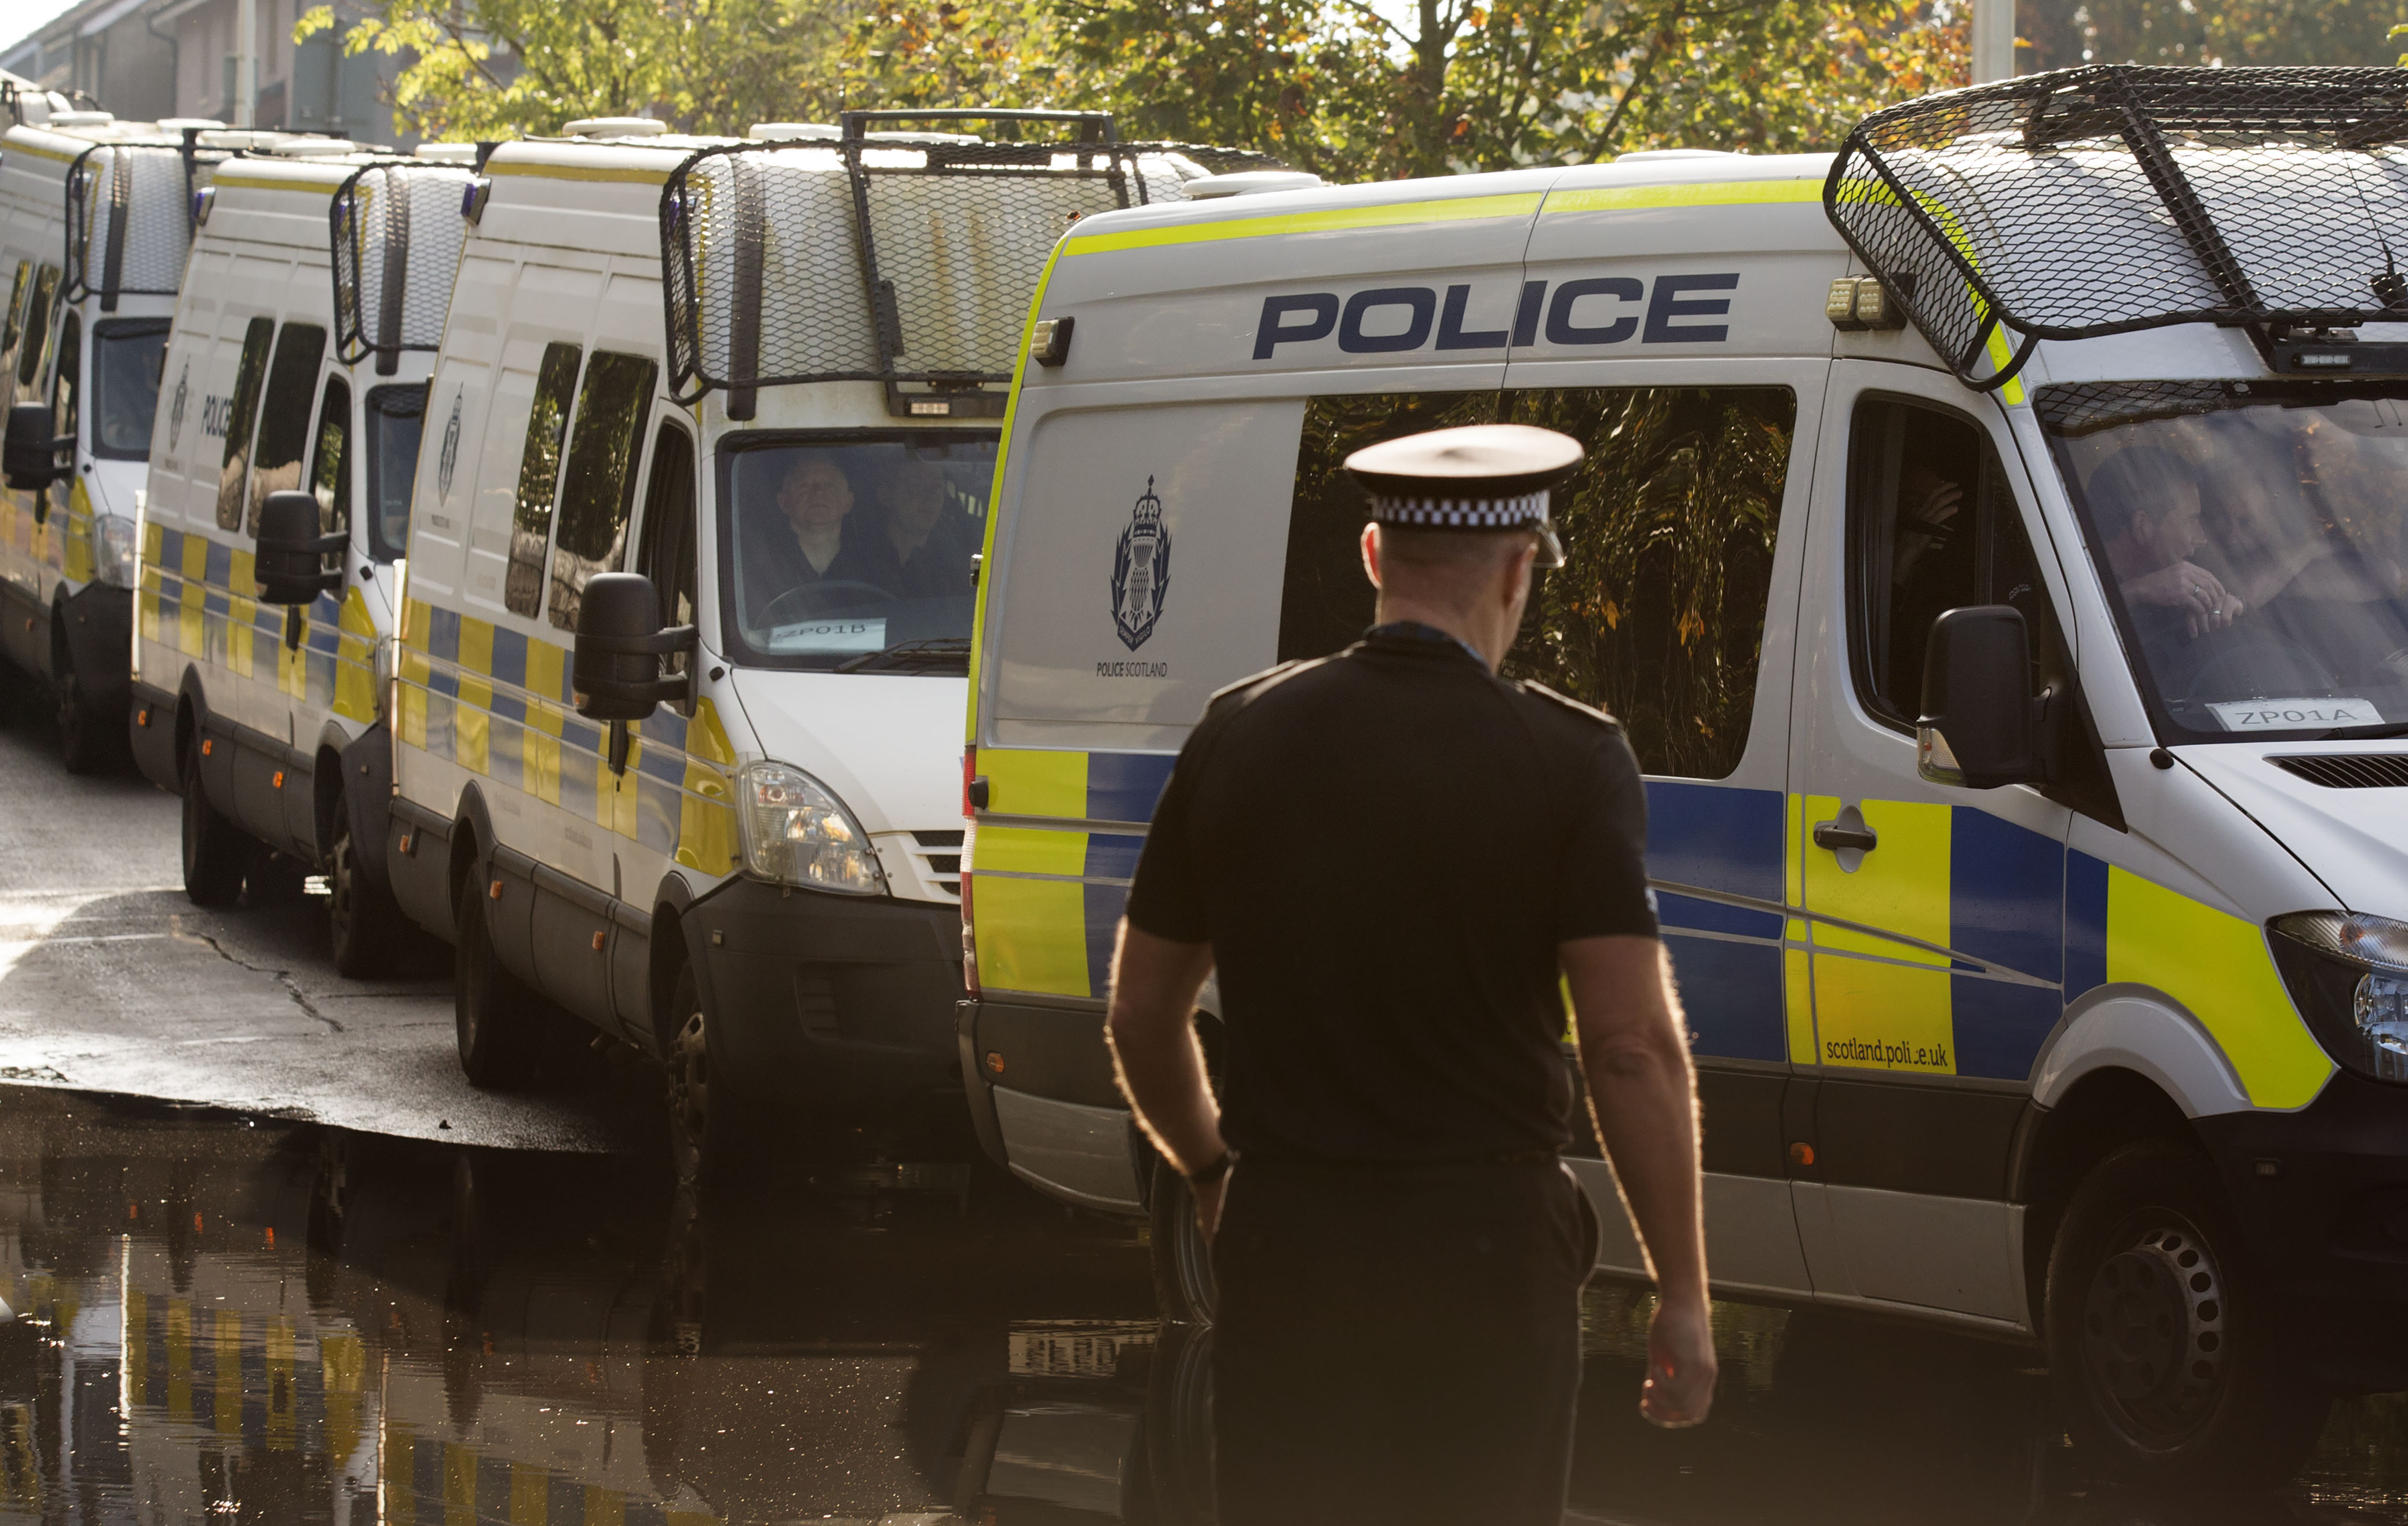 Vans leave from the Scottish Police College at Tulliallan Castle, Kincardine, carrying up to 100 police officers who are being deployed from Scotland to London to assist with policing of the Extinction rebellion climate change protests.